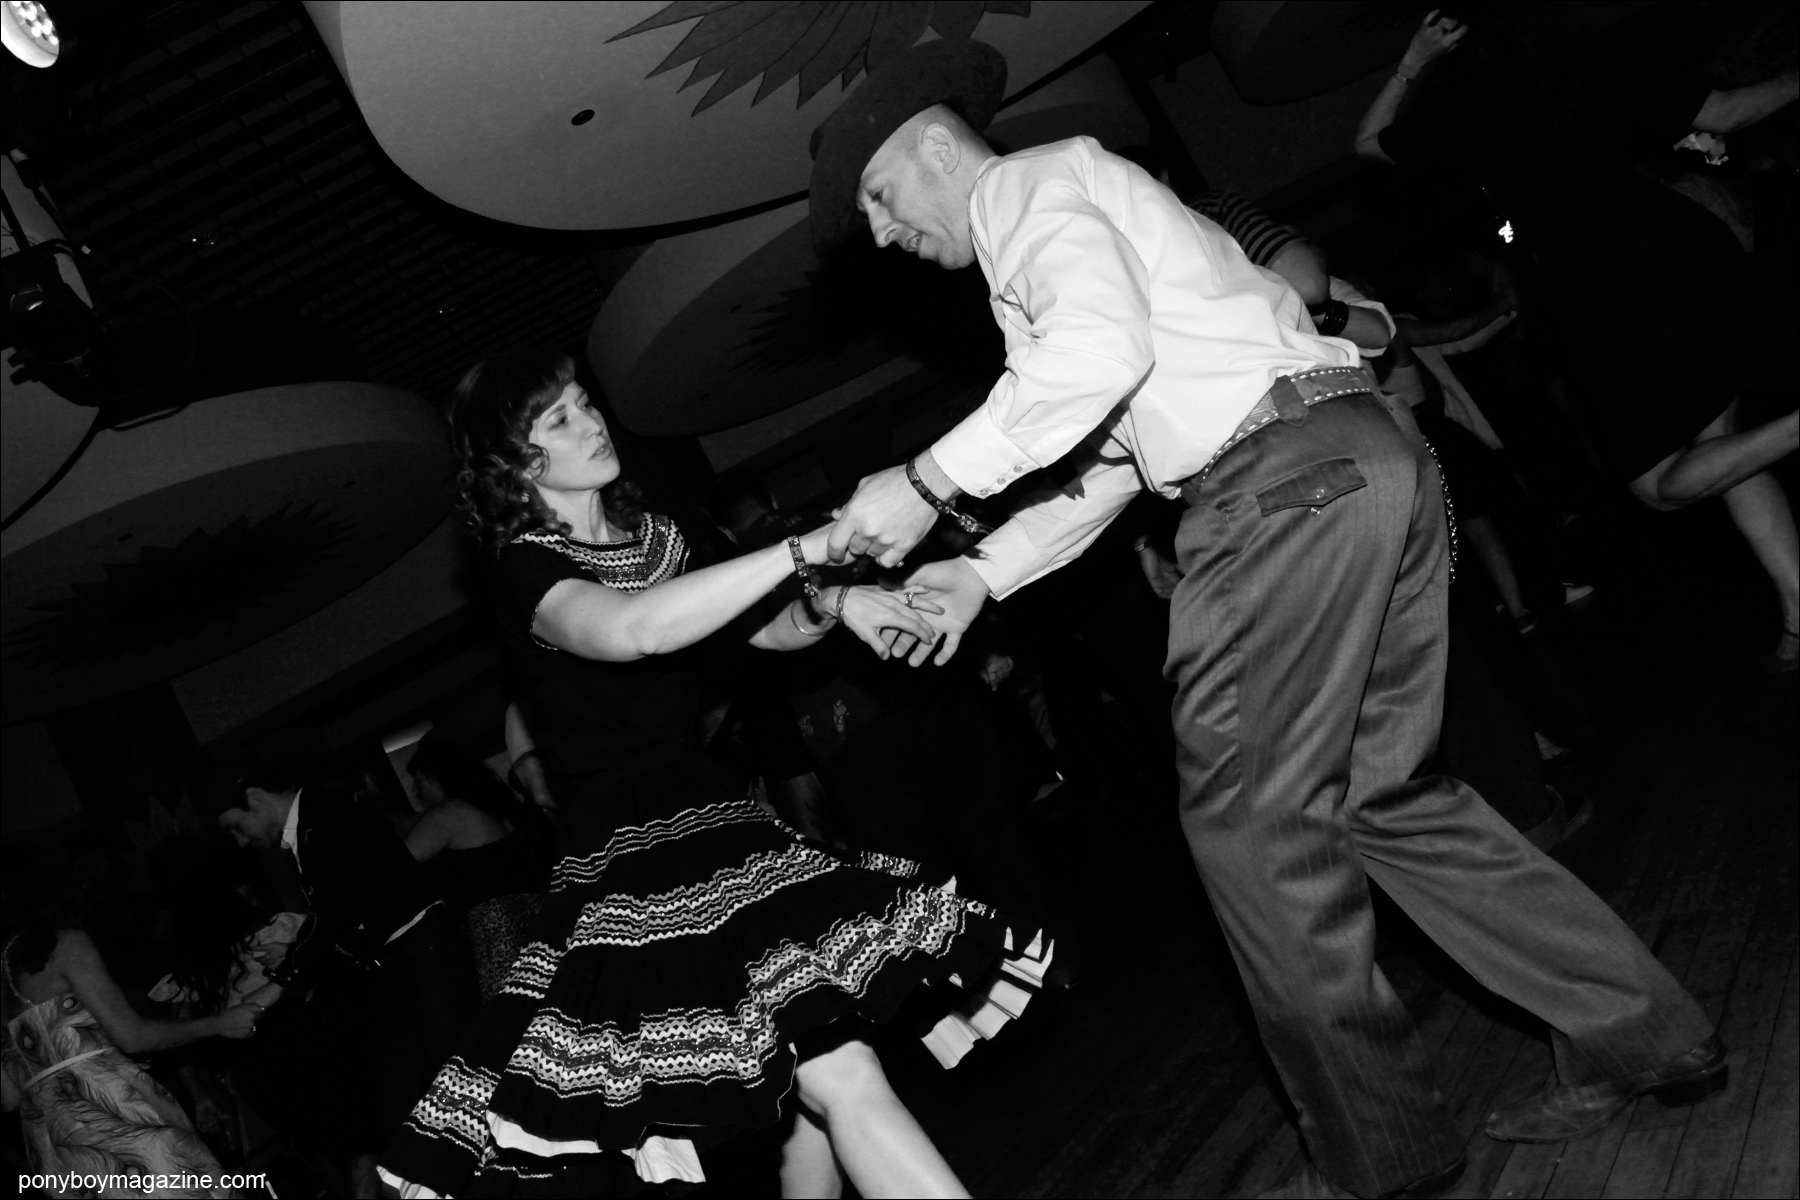 A western couple on the dance floor at Tom Ingram's annual rockabilly weekender Viva Las Vegas. Photograph taken by Alexander Thompson for Ponyboy Magazine.